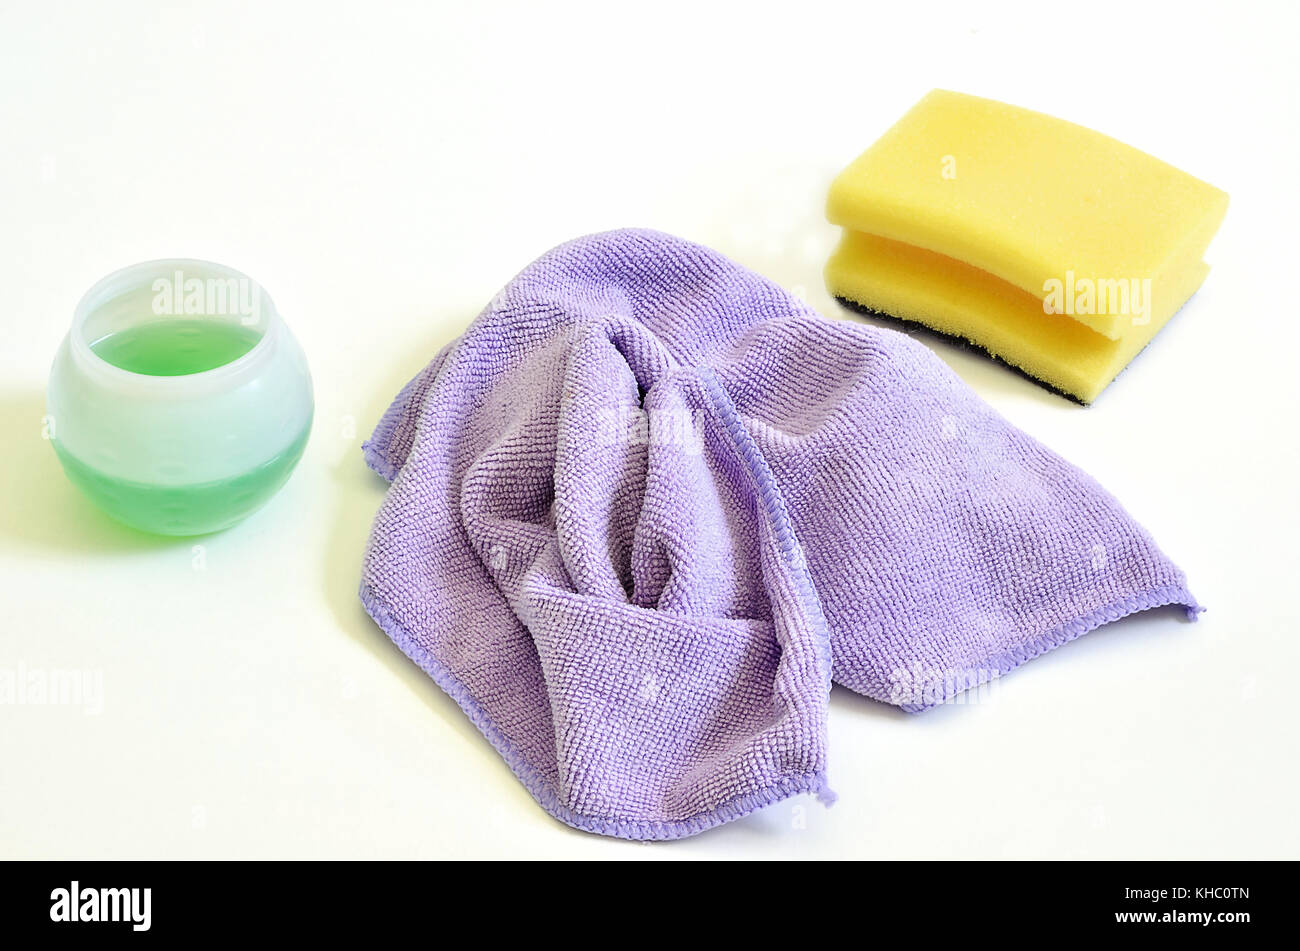 Cleanness Stock Photos Amp Cleanness Stock Images Alamy